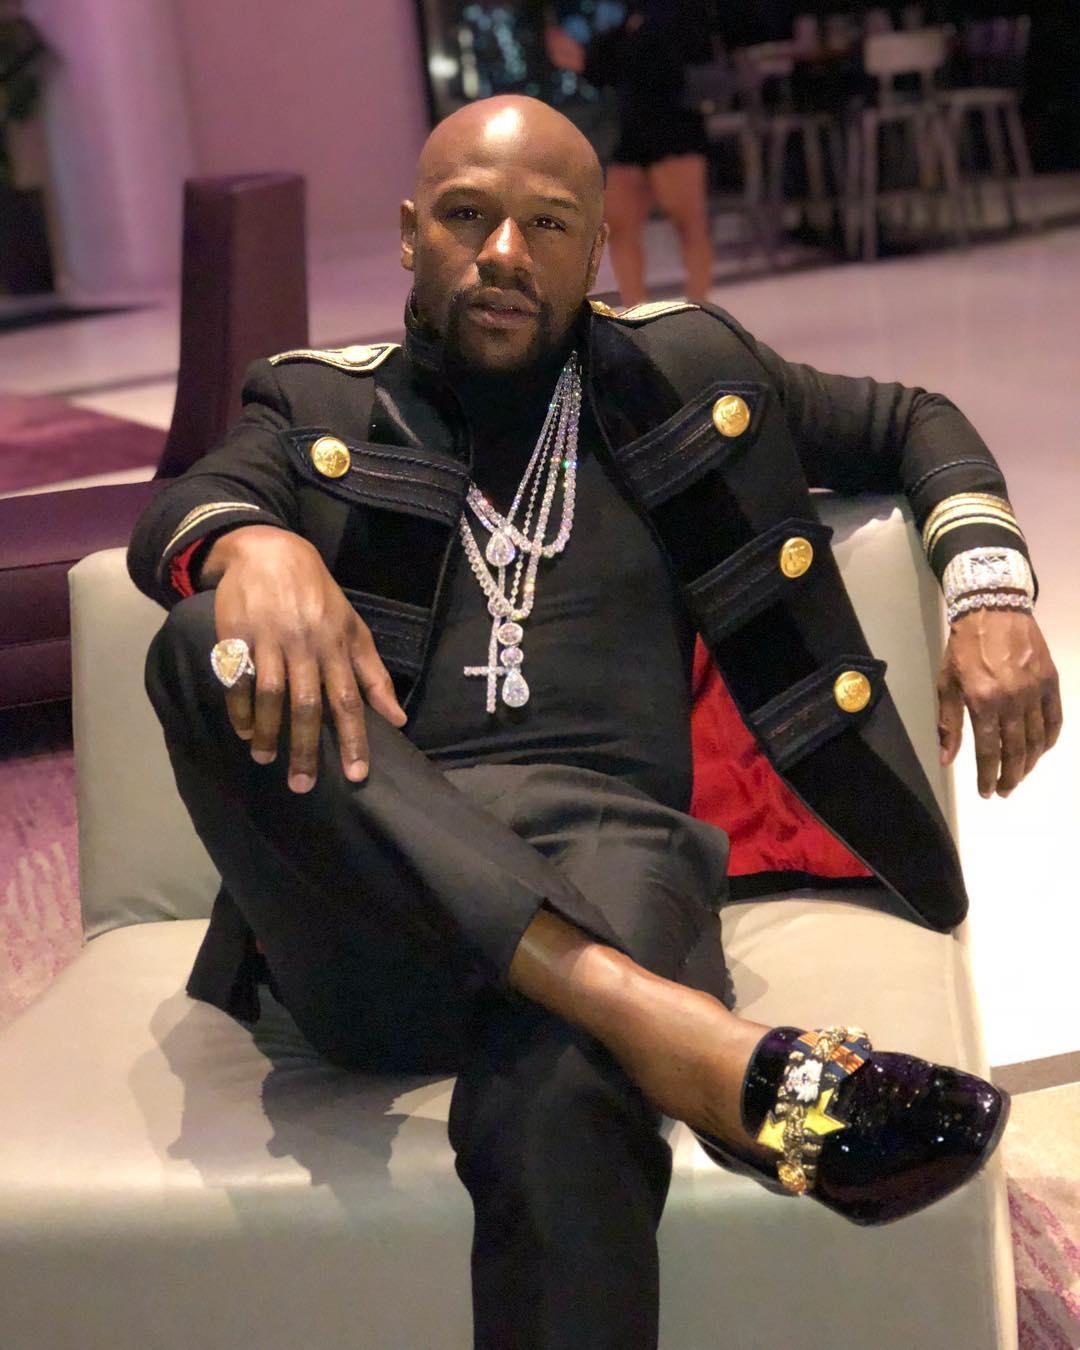 Floyd Mayweather's latest preparations for his New Year's Eve fight included a £4million shopping spree